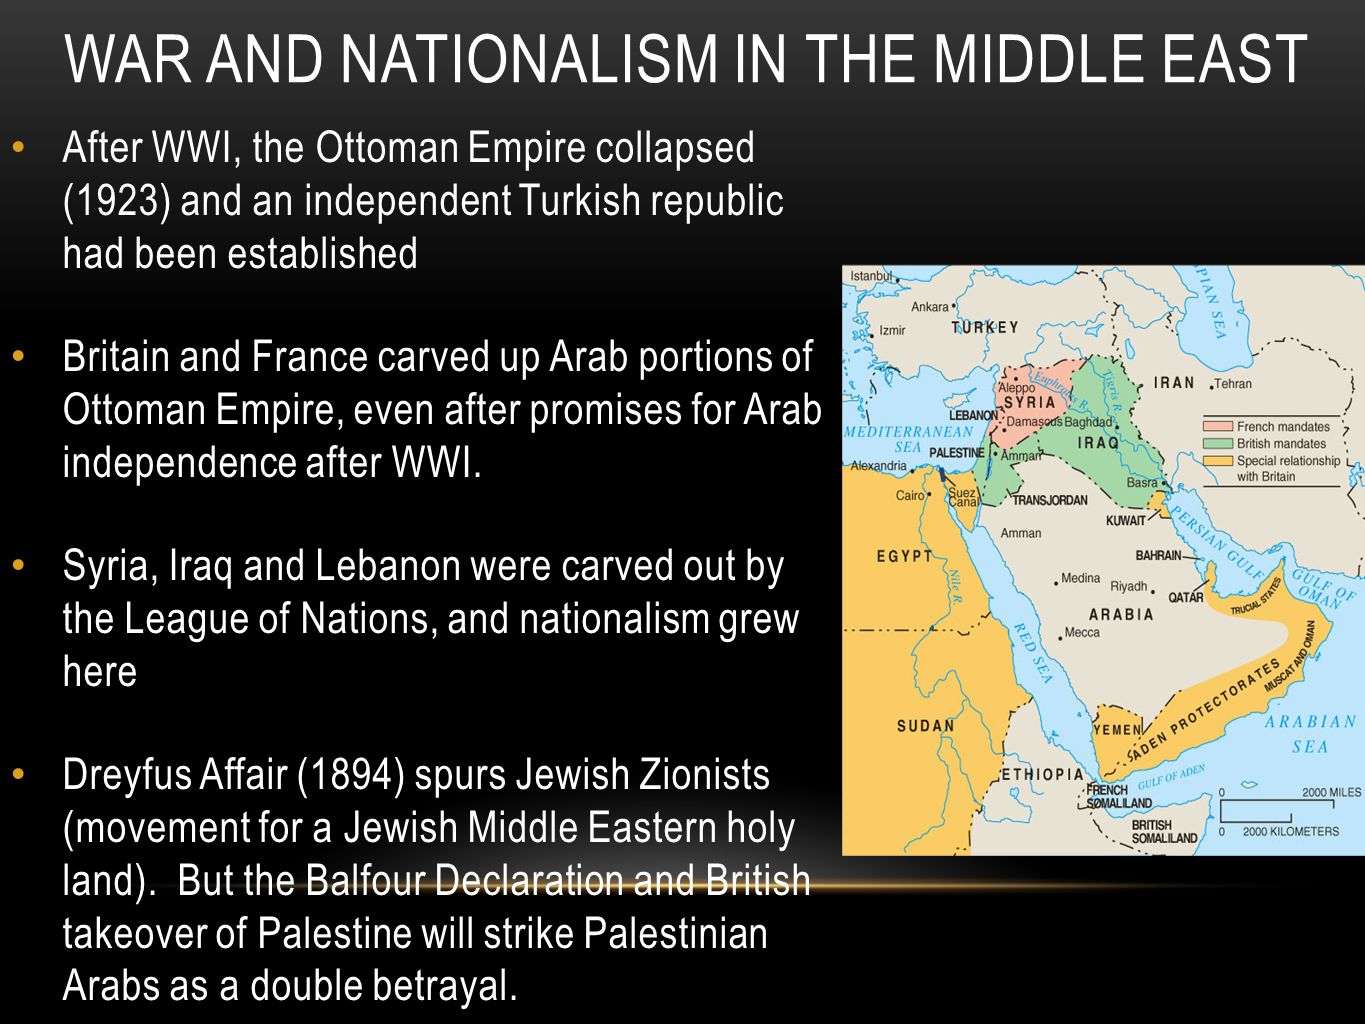 War and Nationalism in the middle east